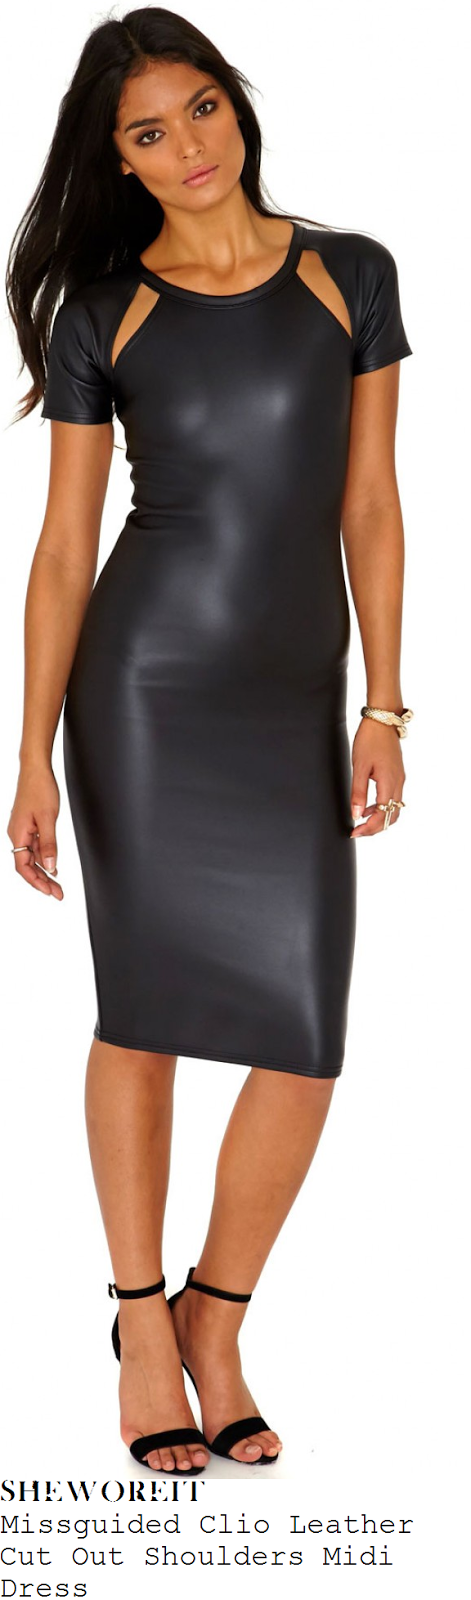 nicole-scherzinger-black-leather-midi-dress-celeb-juice